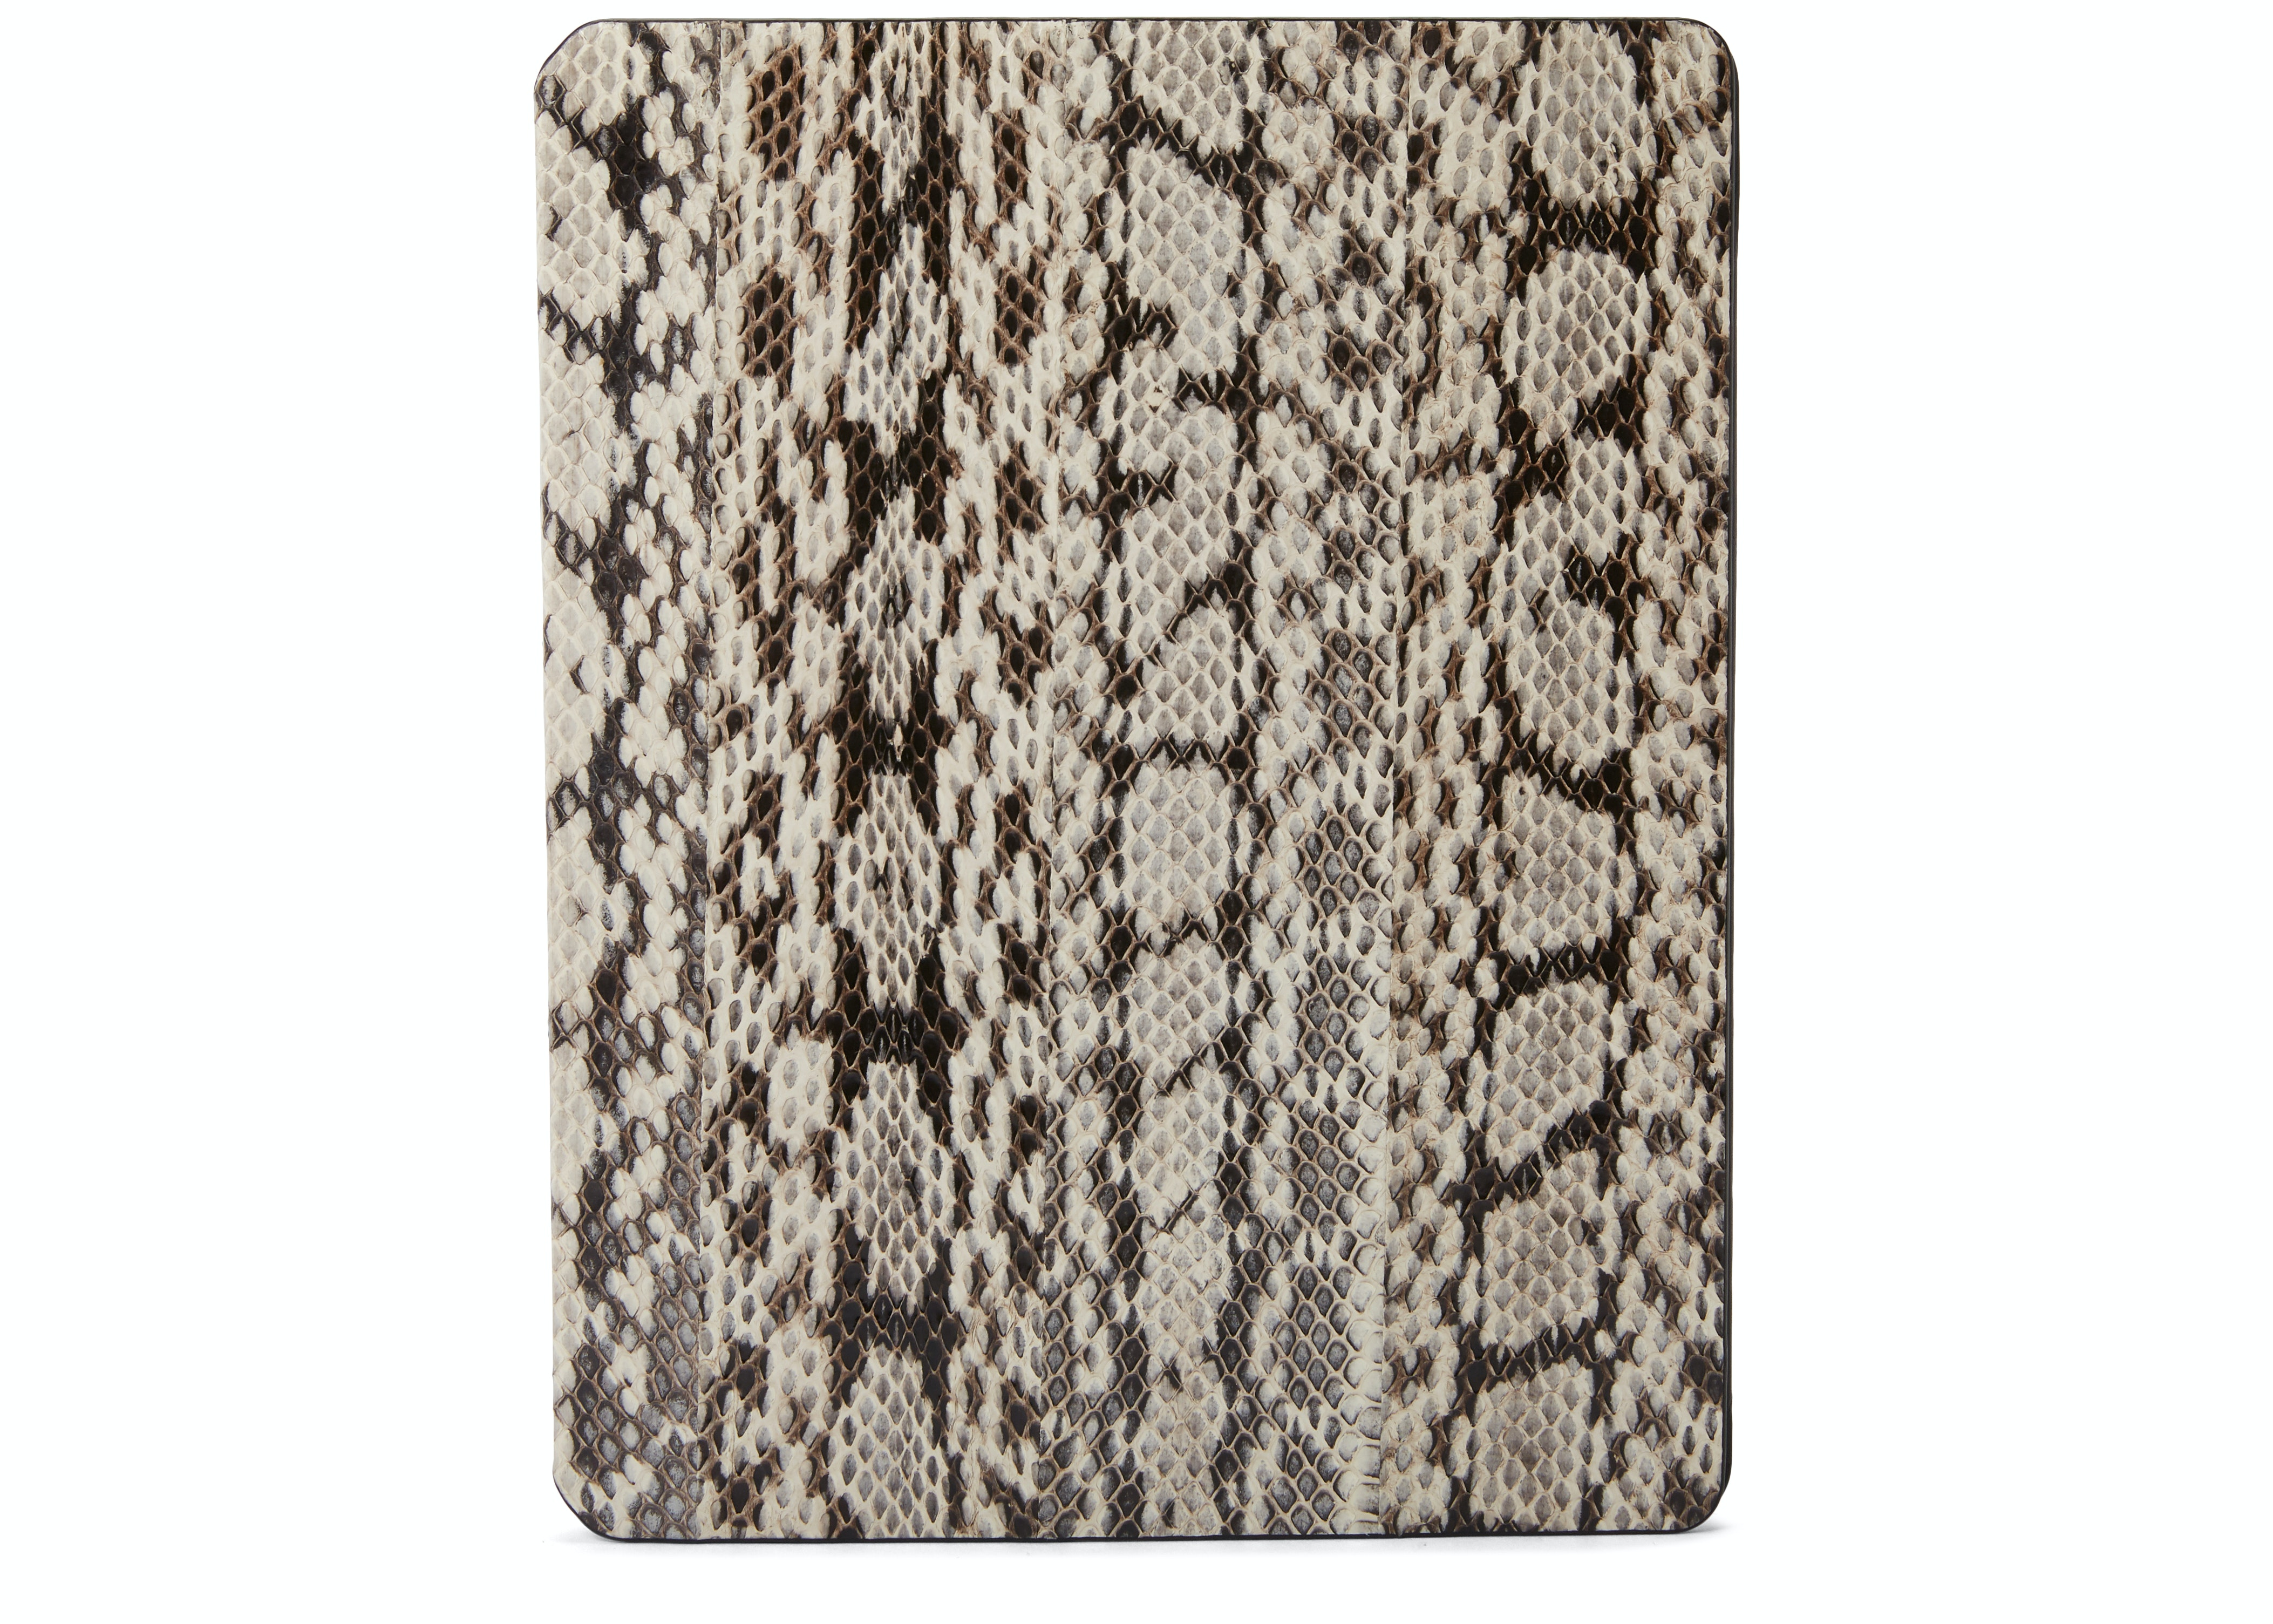 MCM iPad Case 2 Snake Print Cream Brown